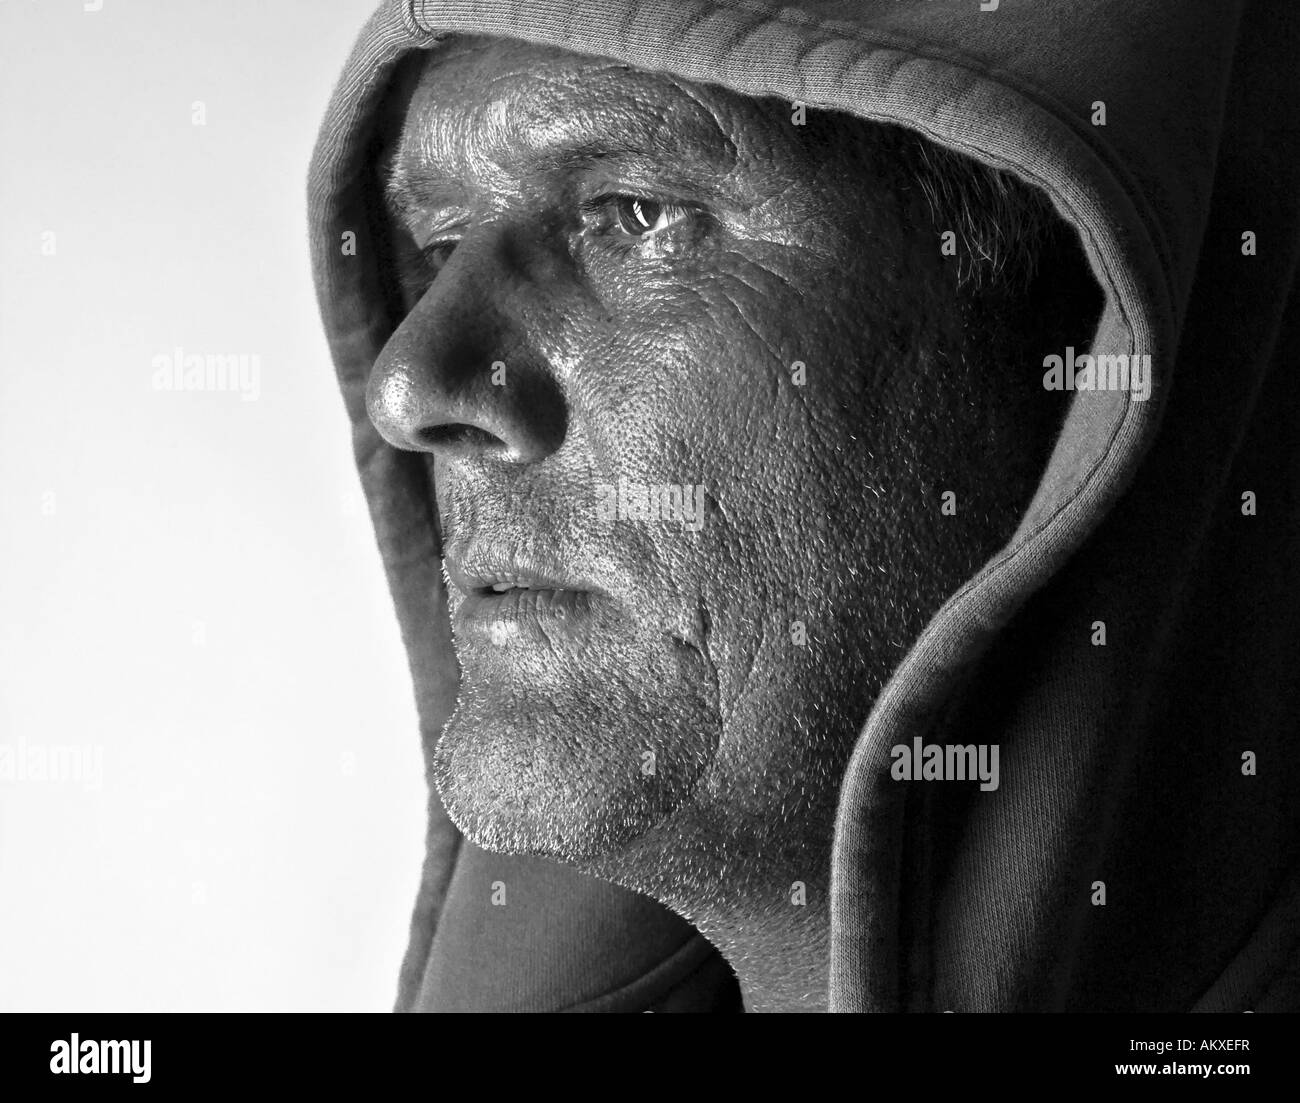 Portrait of an athletic man - Stock Image